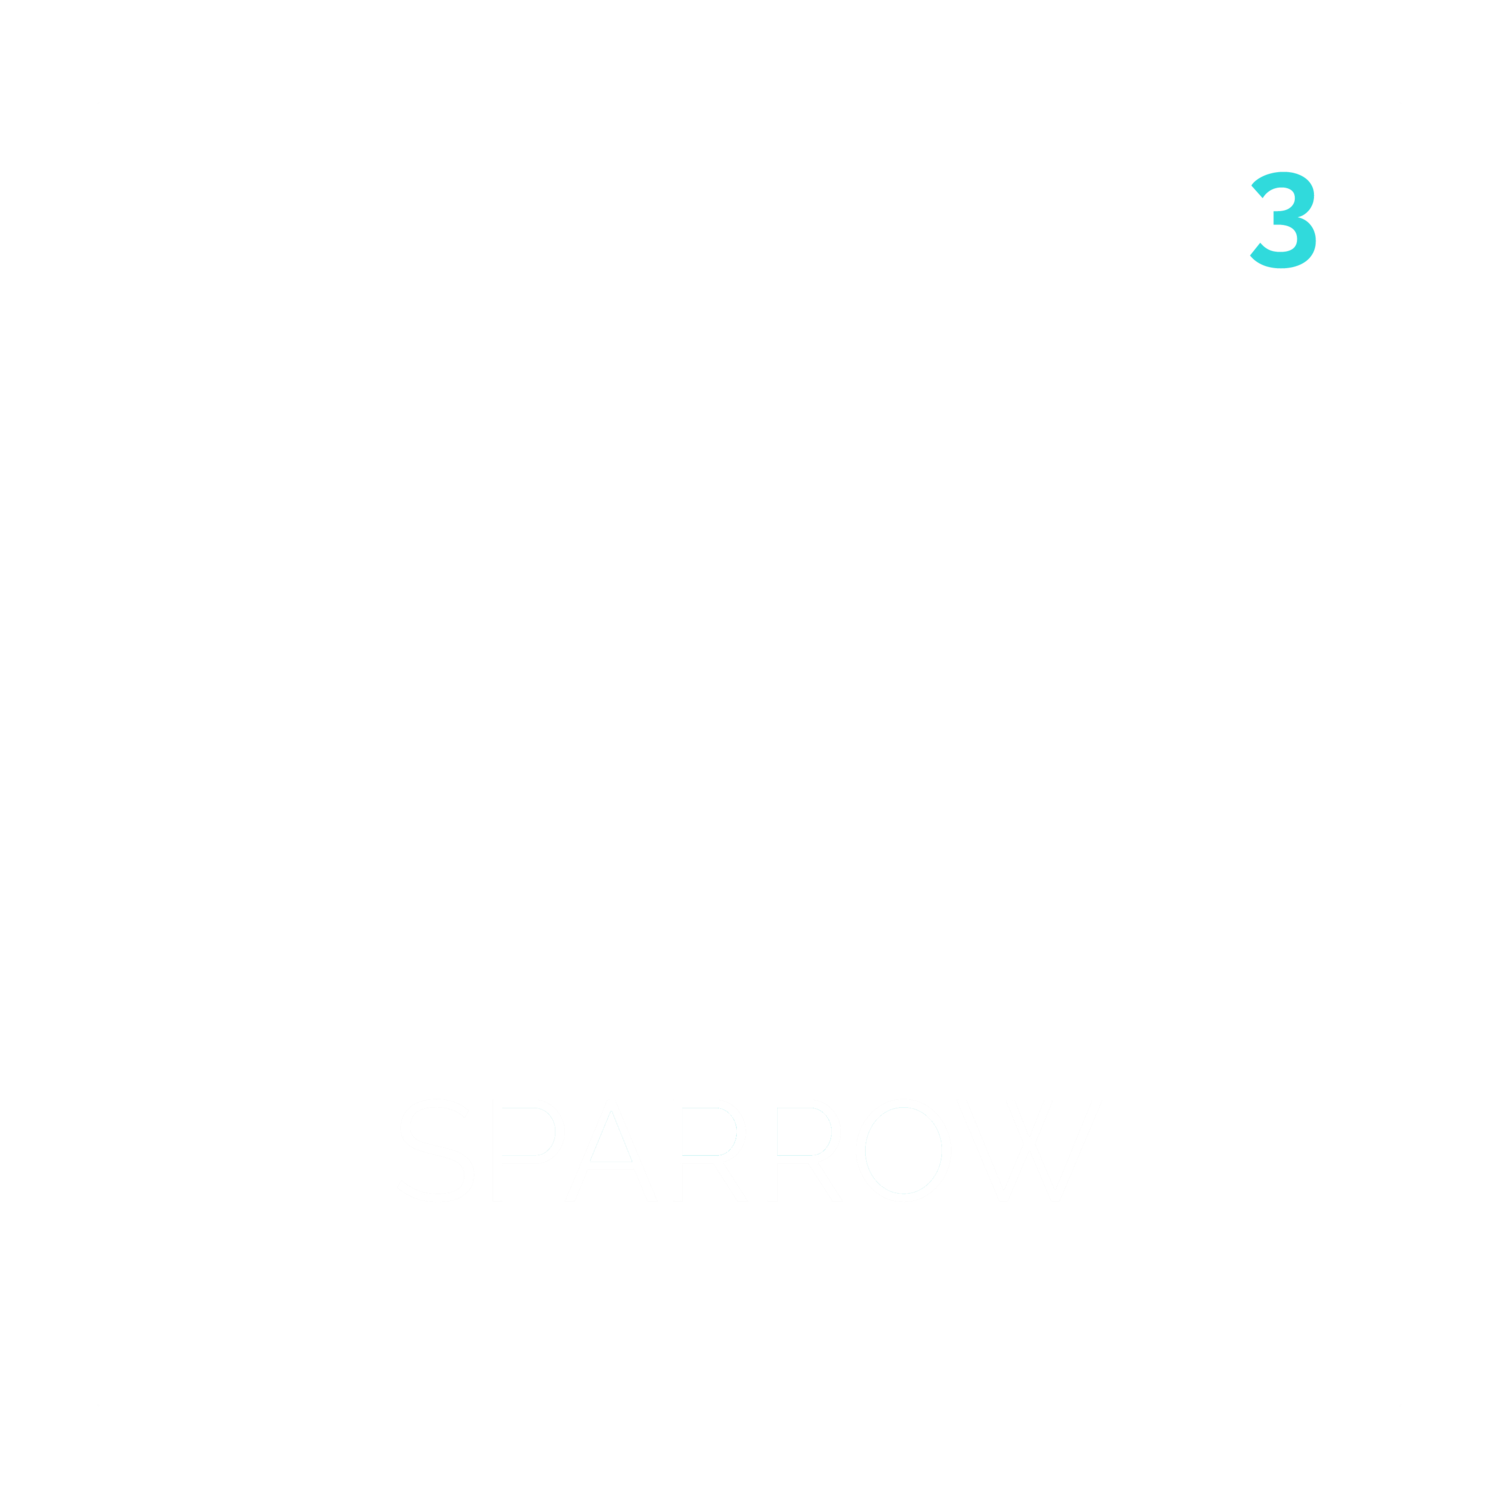 The Sparrow Element